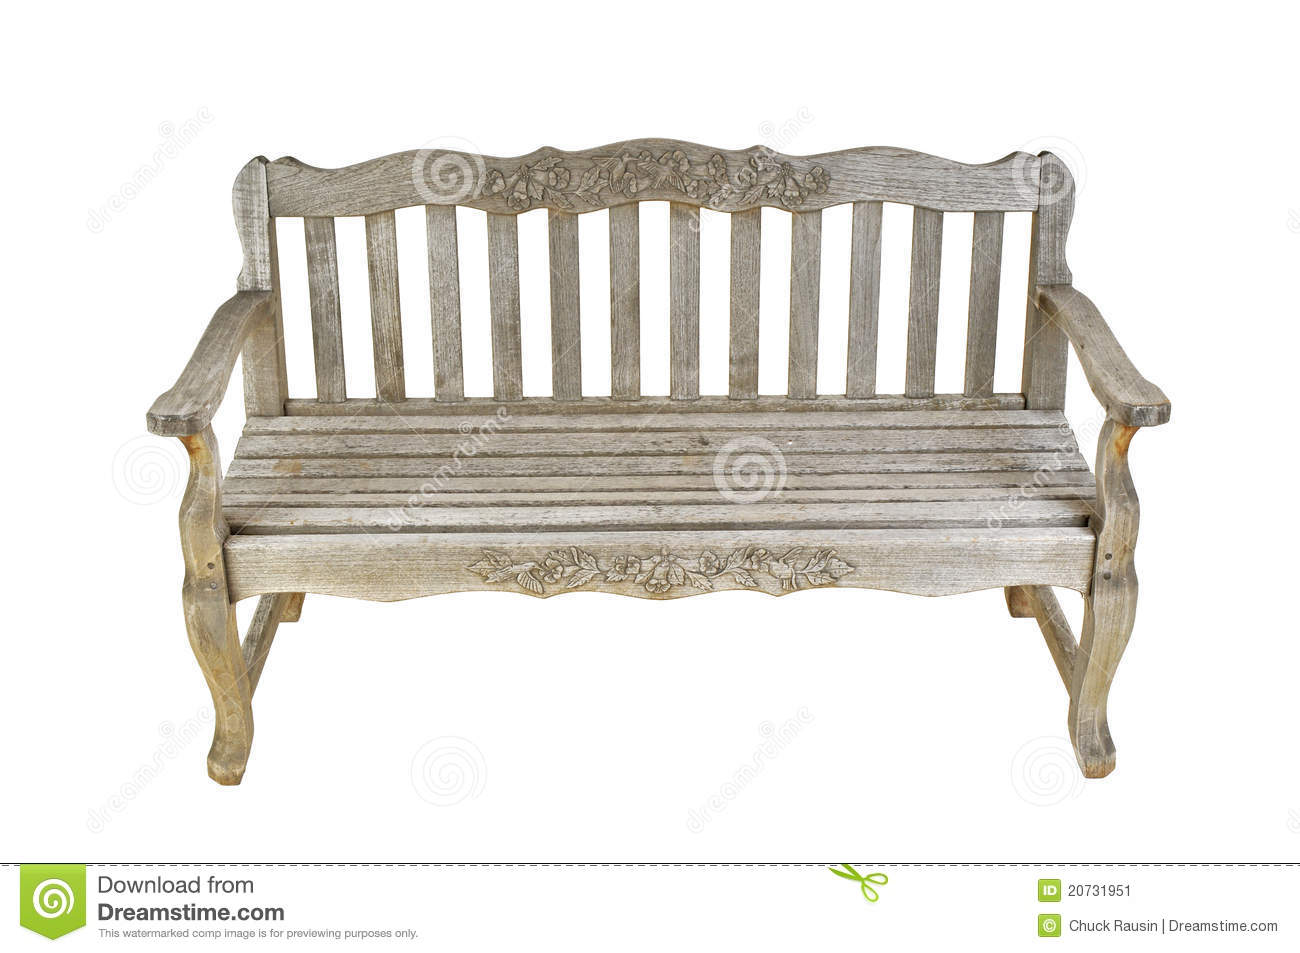 vintage wooden bench isolated on a white background.